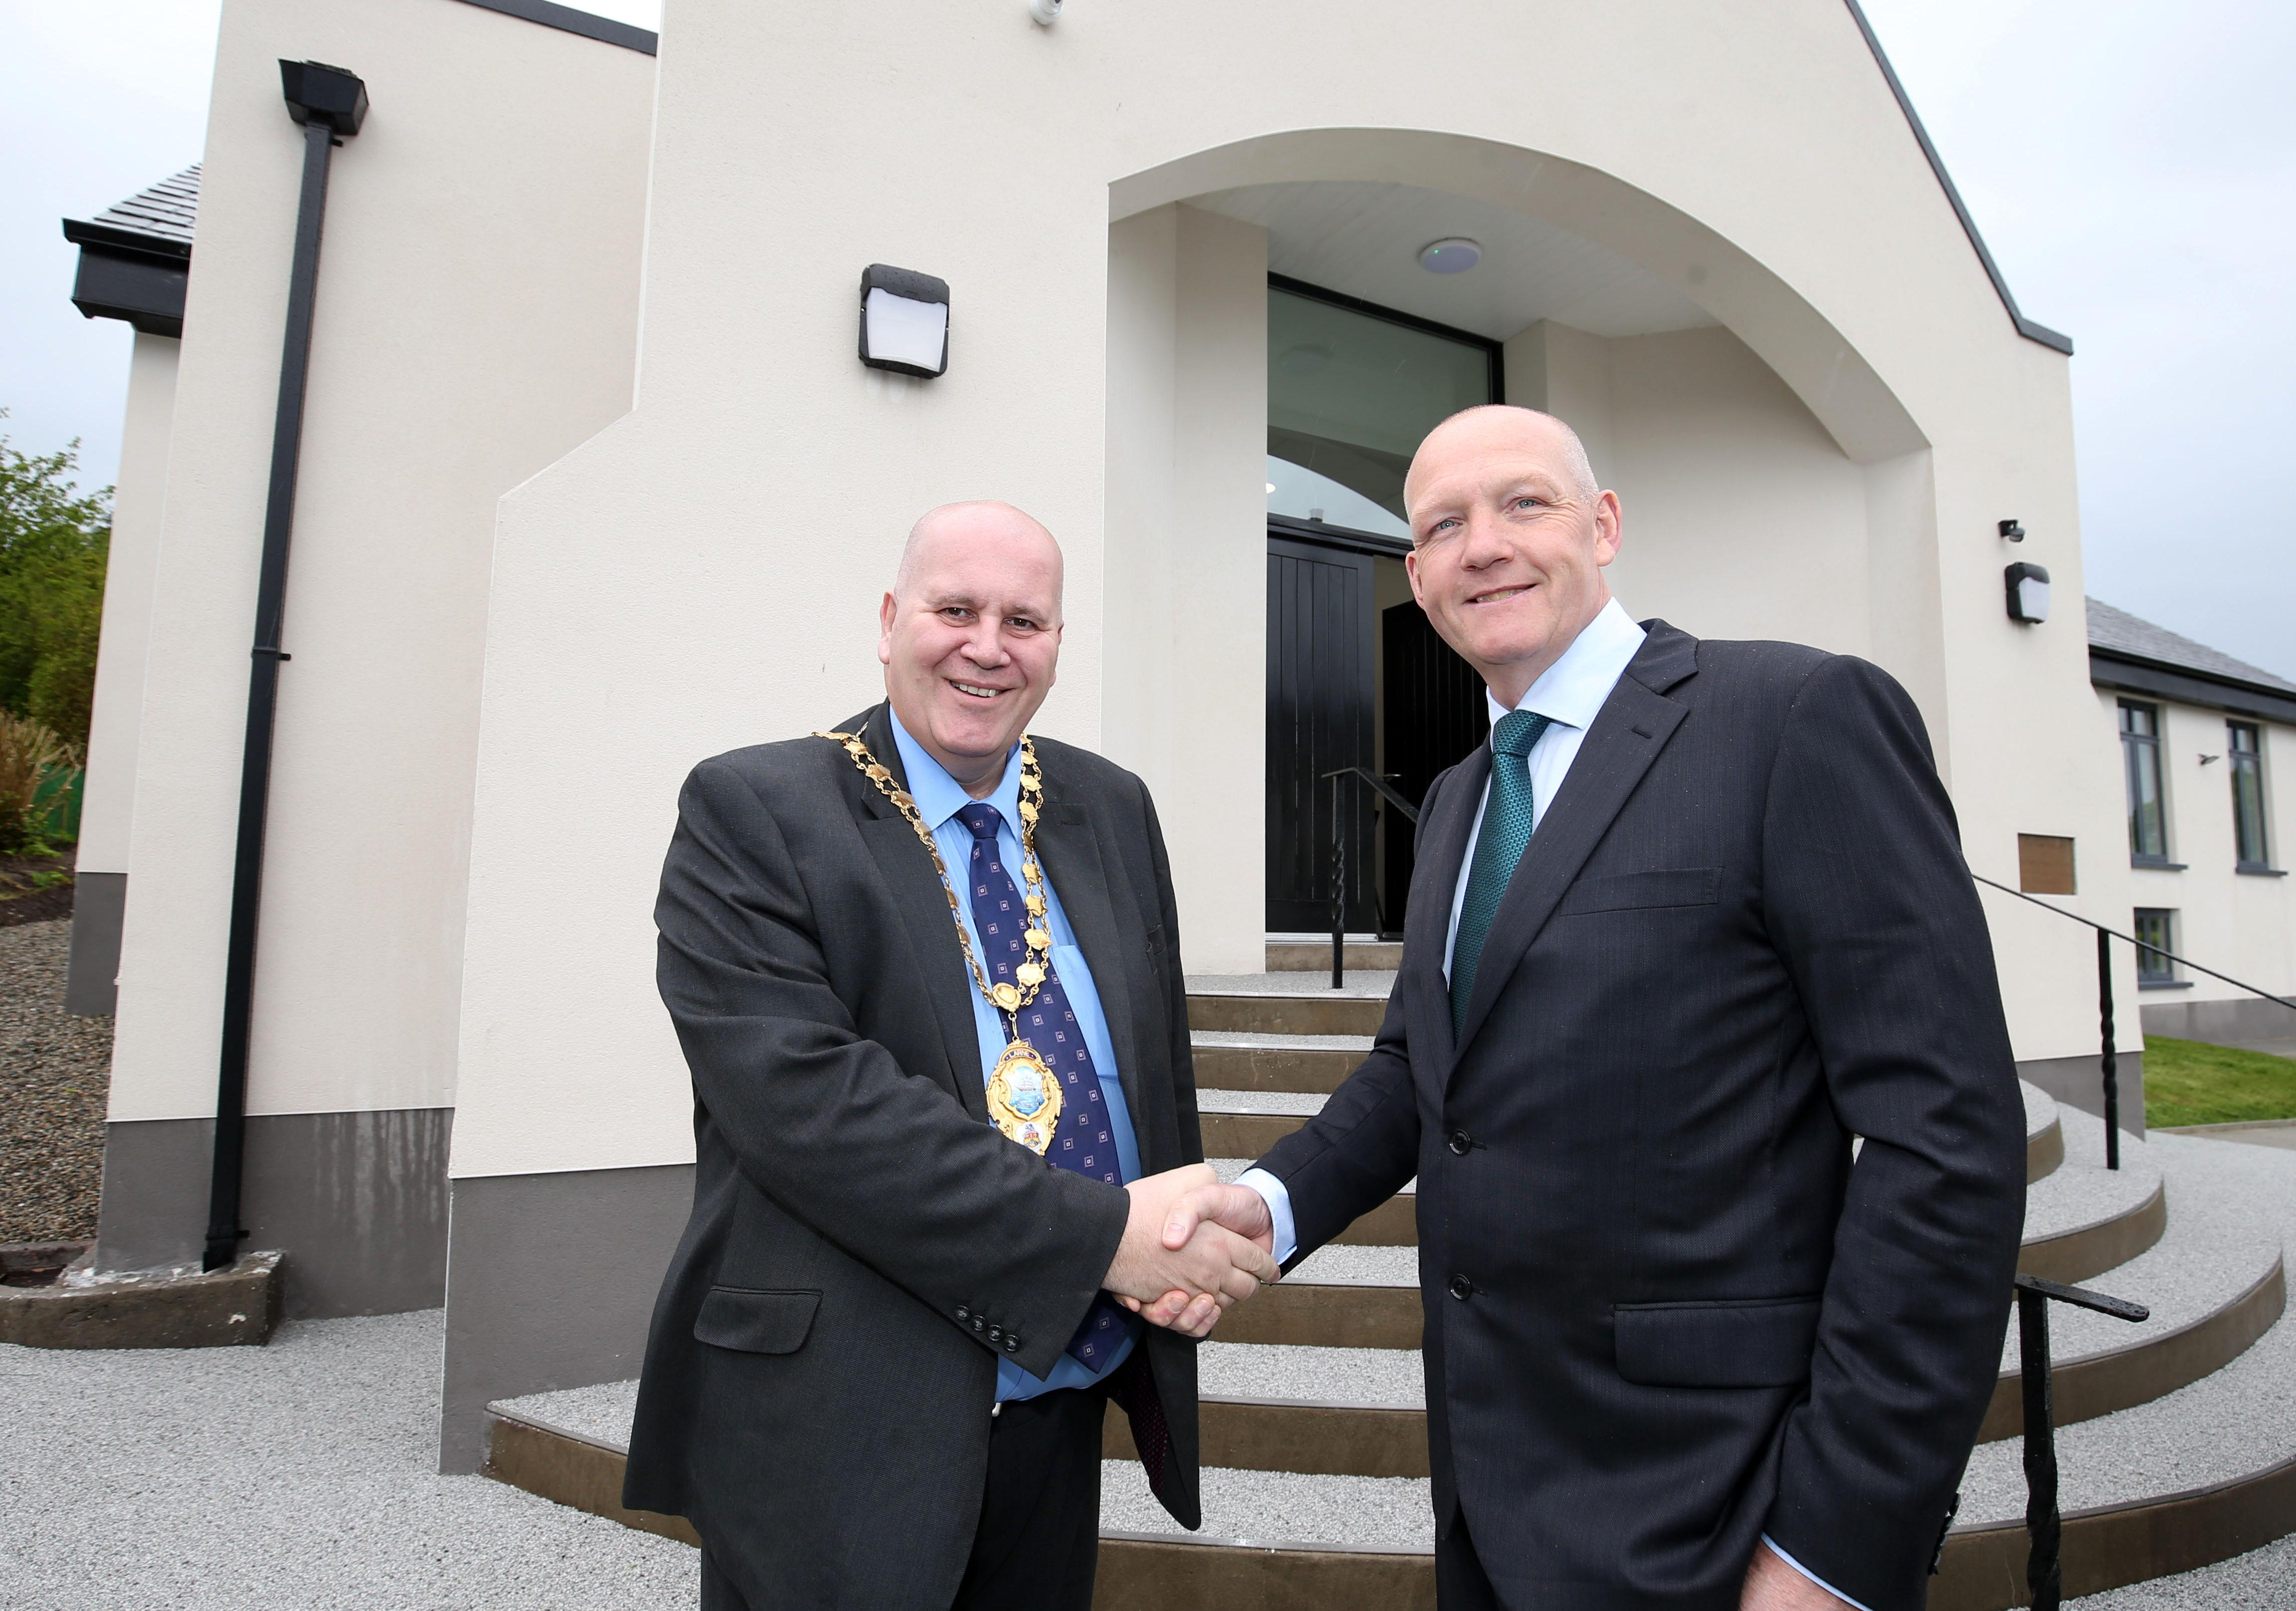 Cllr Paul Reid, Mayor of Larne and Paul Eakin, UK CEO Eakin Healthcare Group.